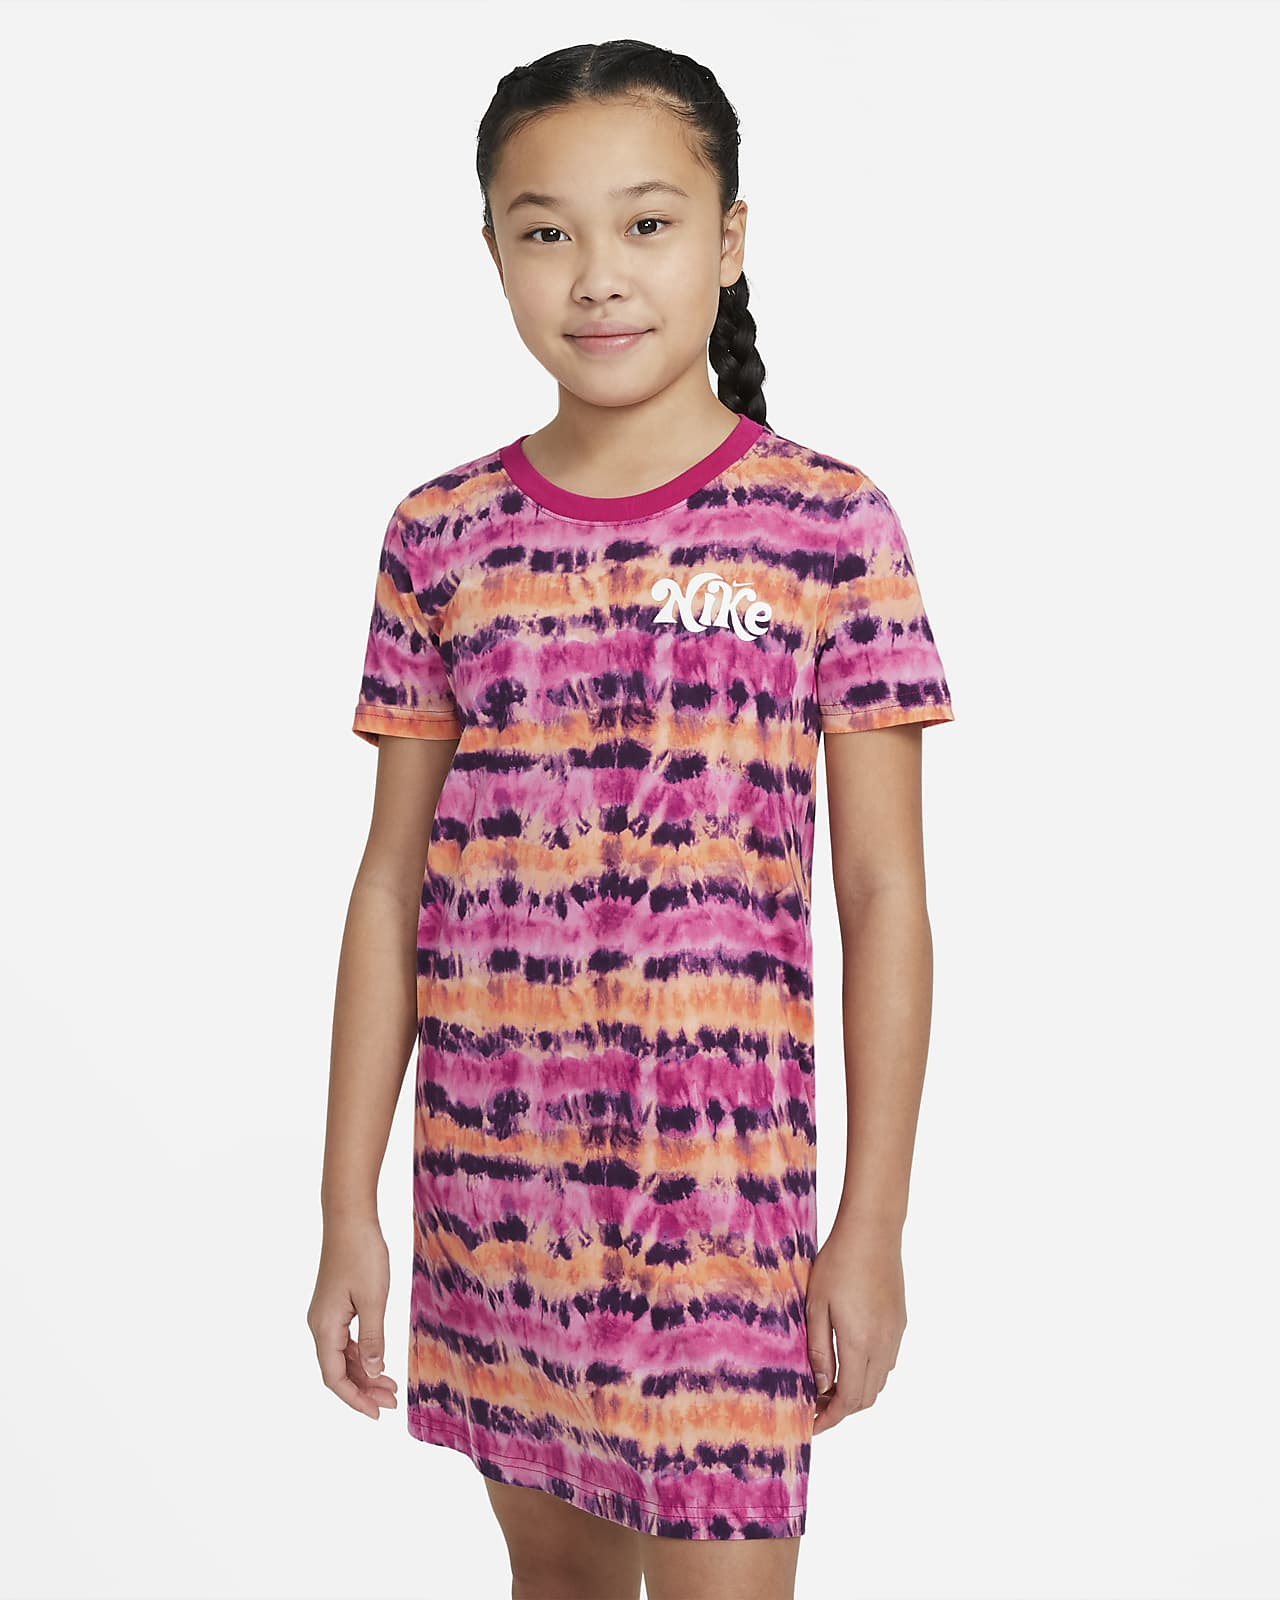 Nike Sportswear Big Kids' (Girls') Tie-Dye T-Shirt Dress